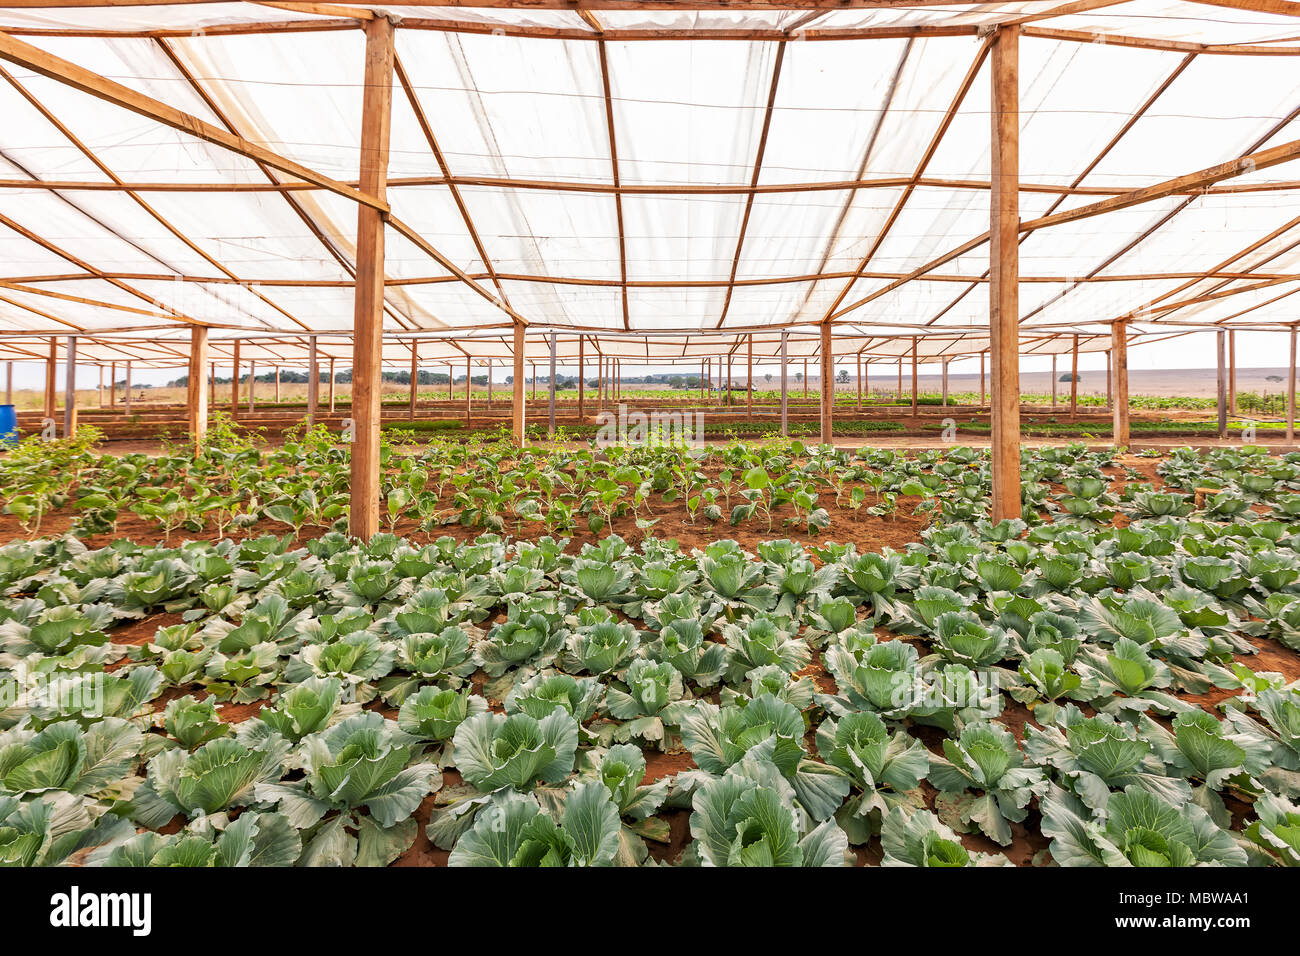 Inside view greenhouse. Angola. Cabinda. - Stock Image